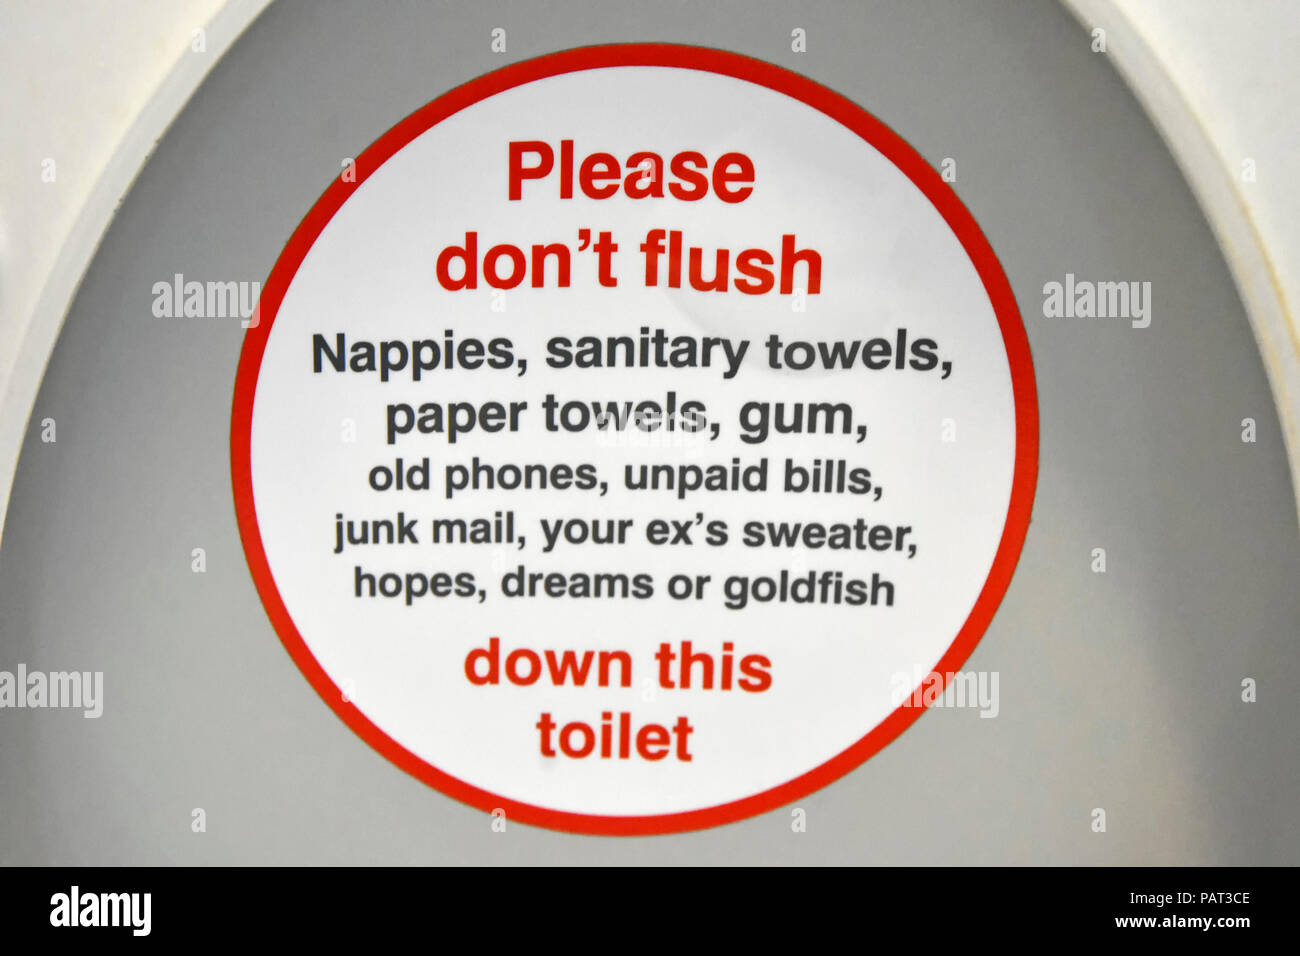 Public transport humour onboard passenger train toilet seat lid humourous instructions items not to flush down loo lavatory pan WC London England UK - Stock Image